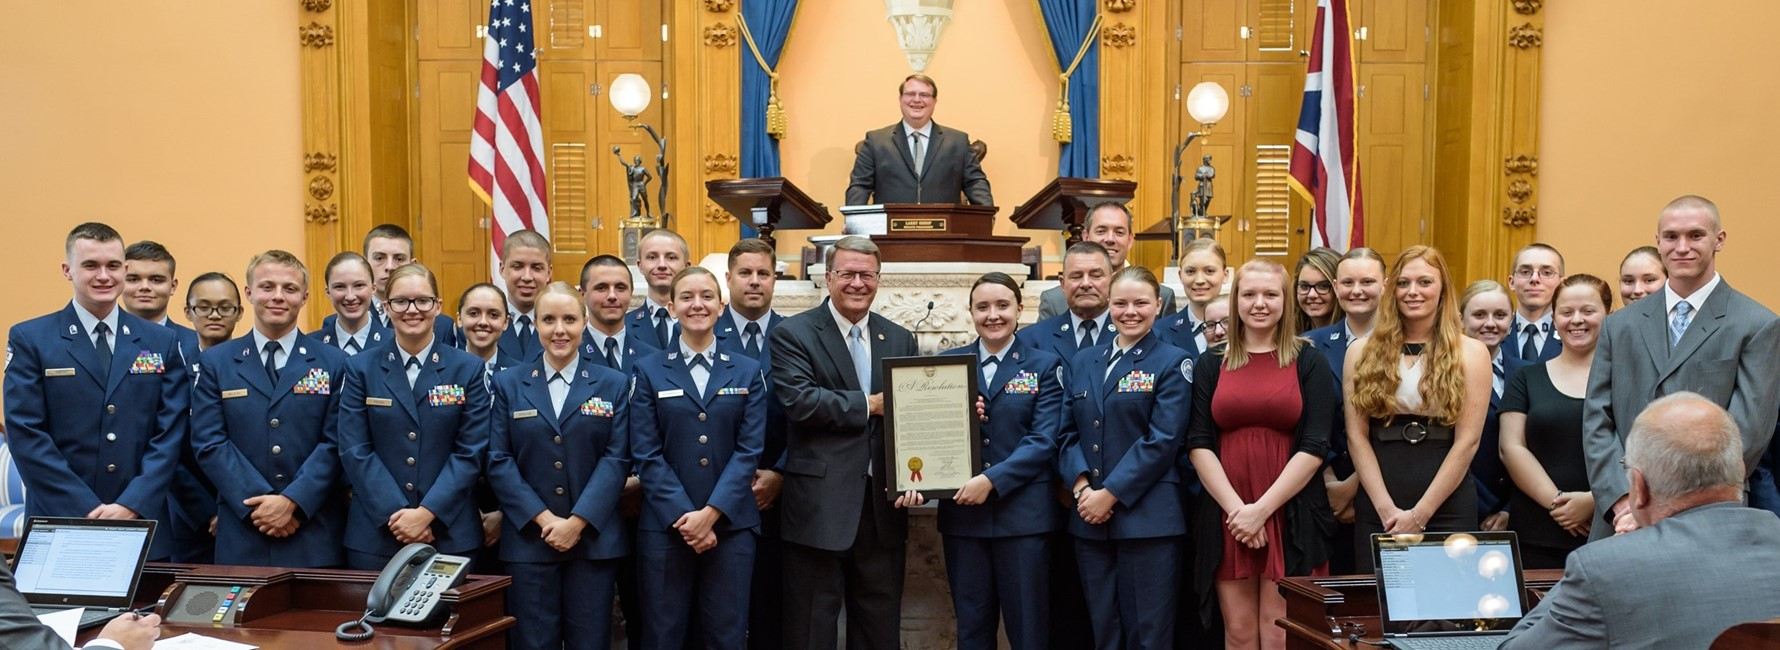 JROTC Honored at State Senate